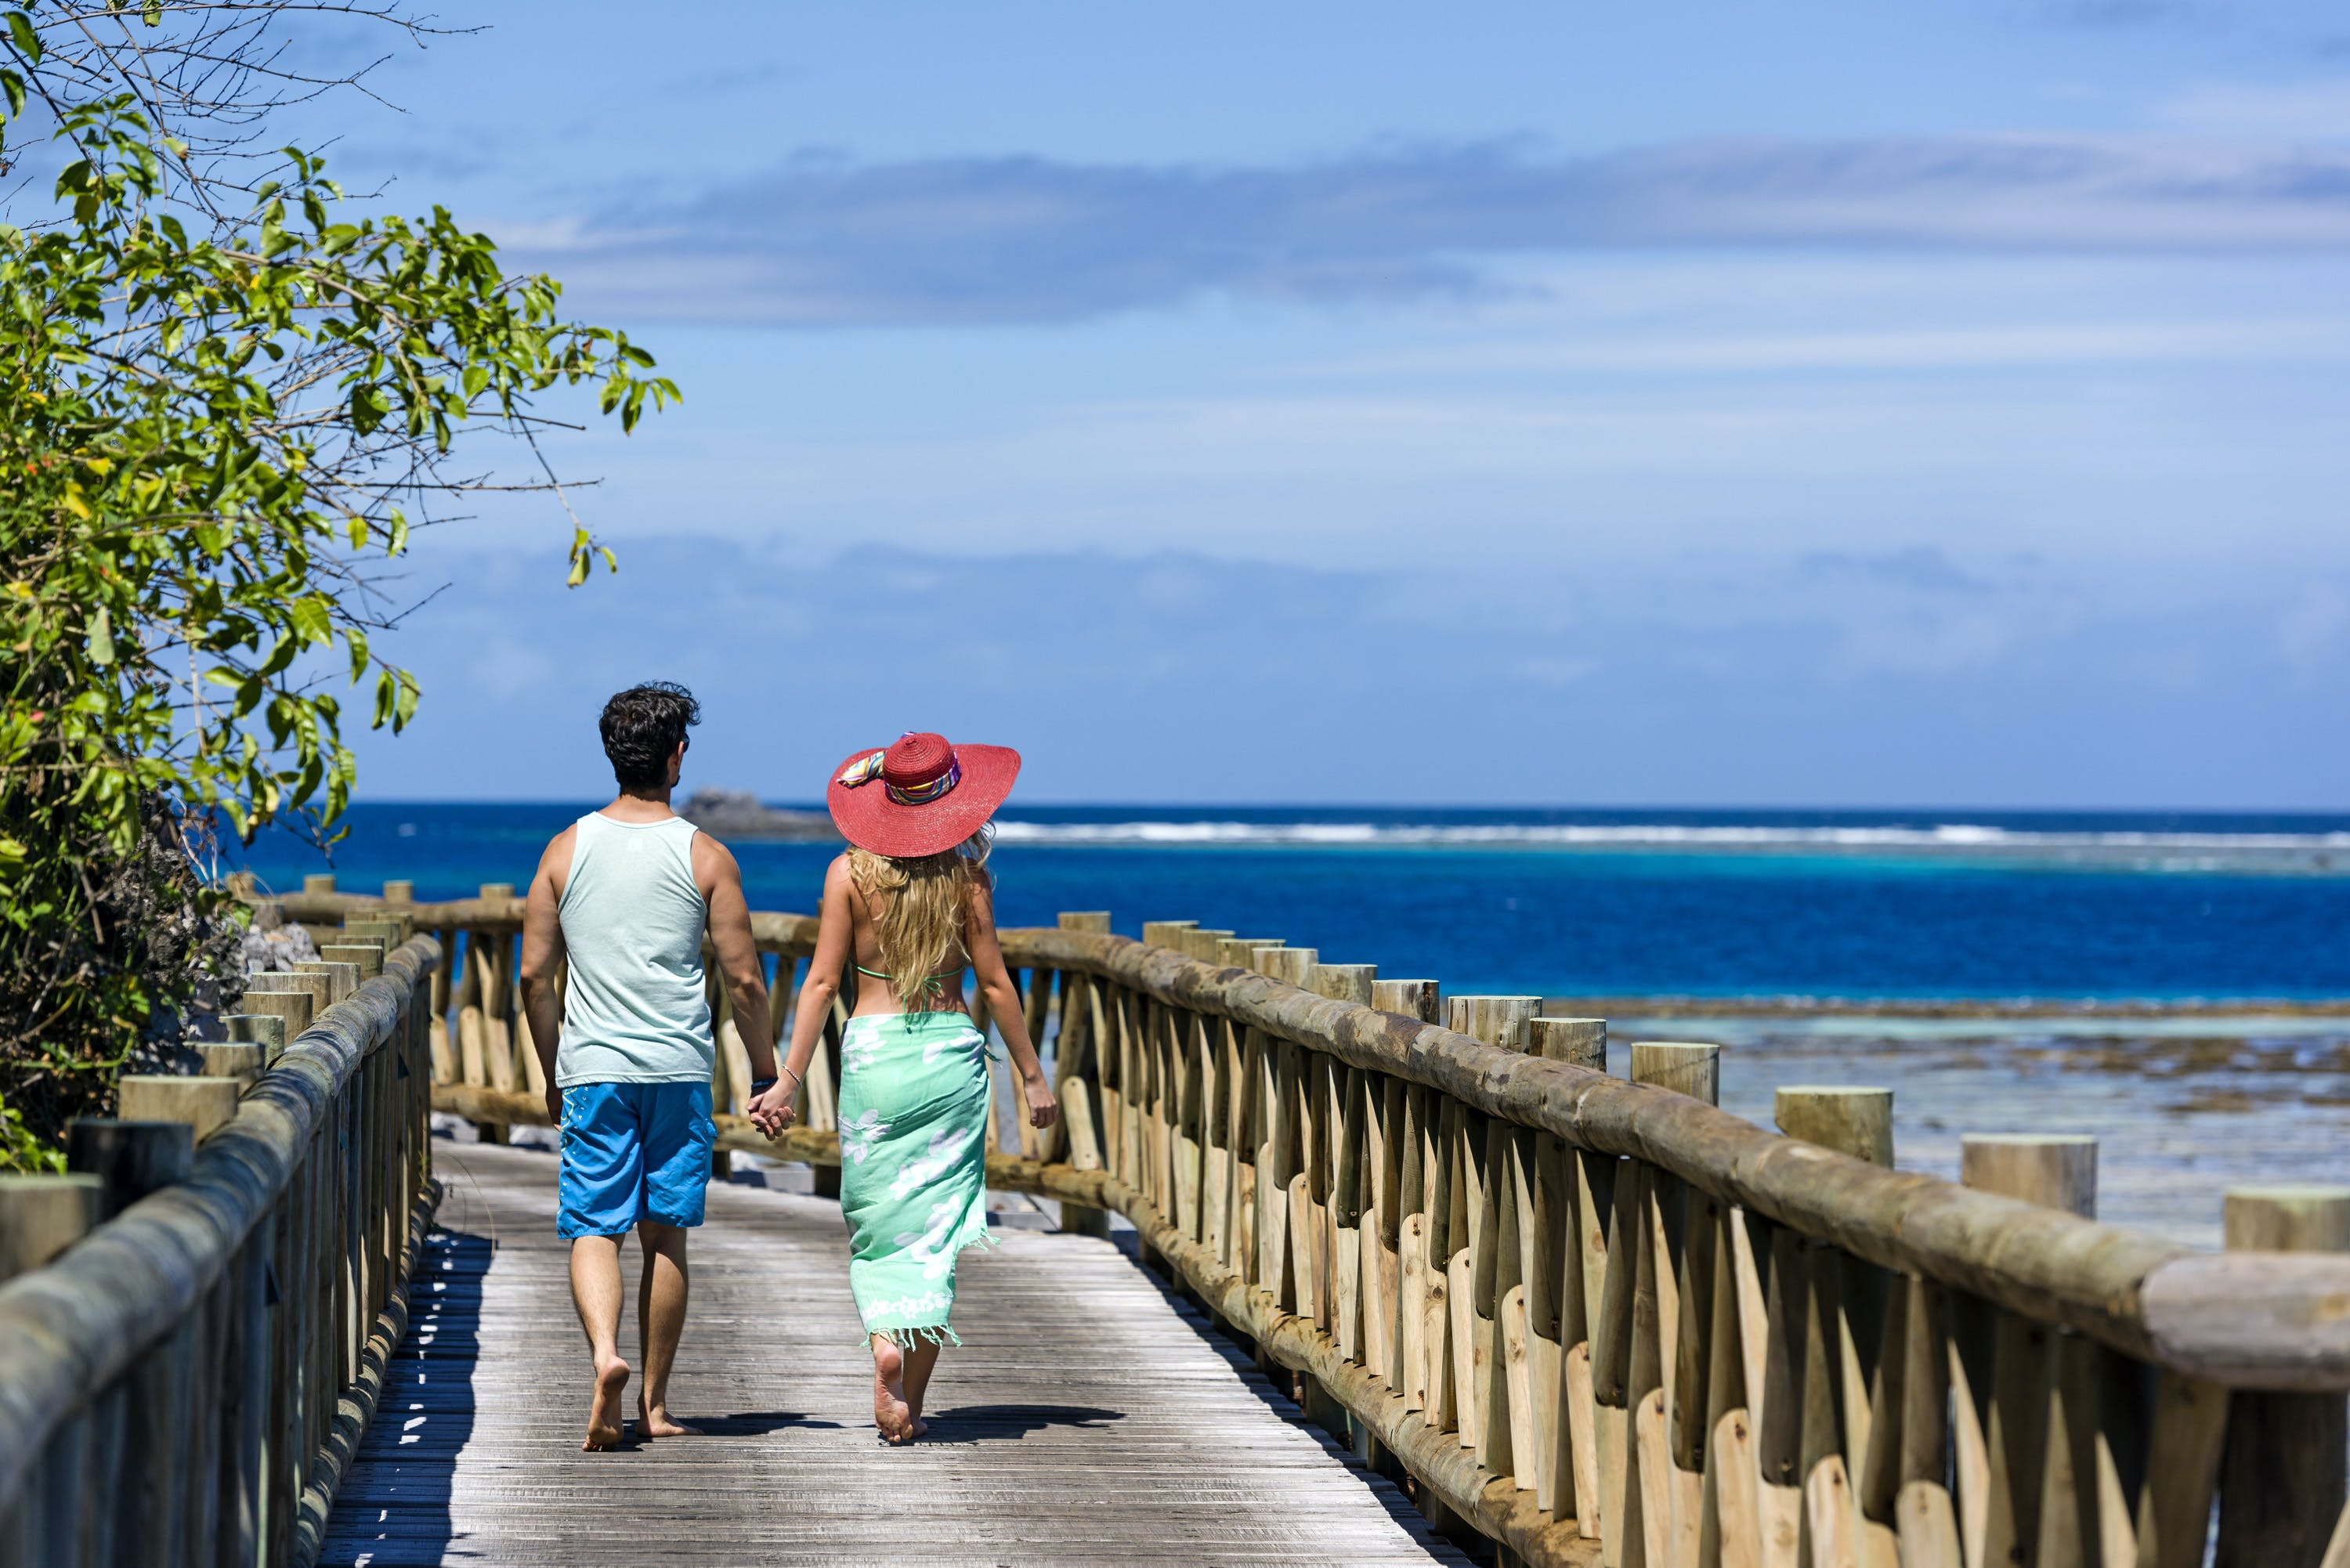 Boardwalk at Matamanoa